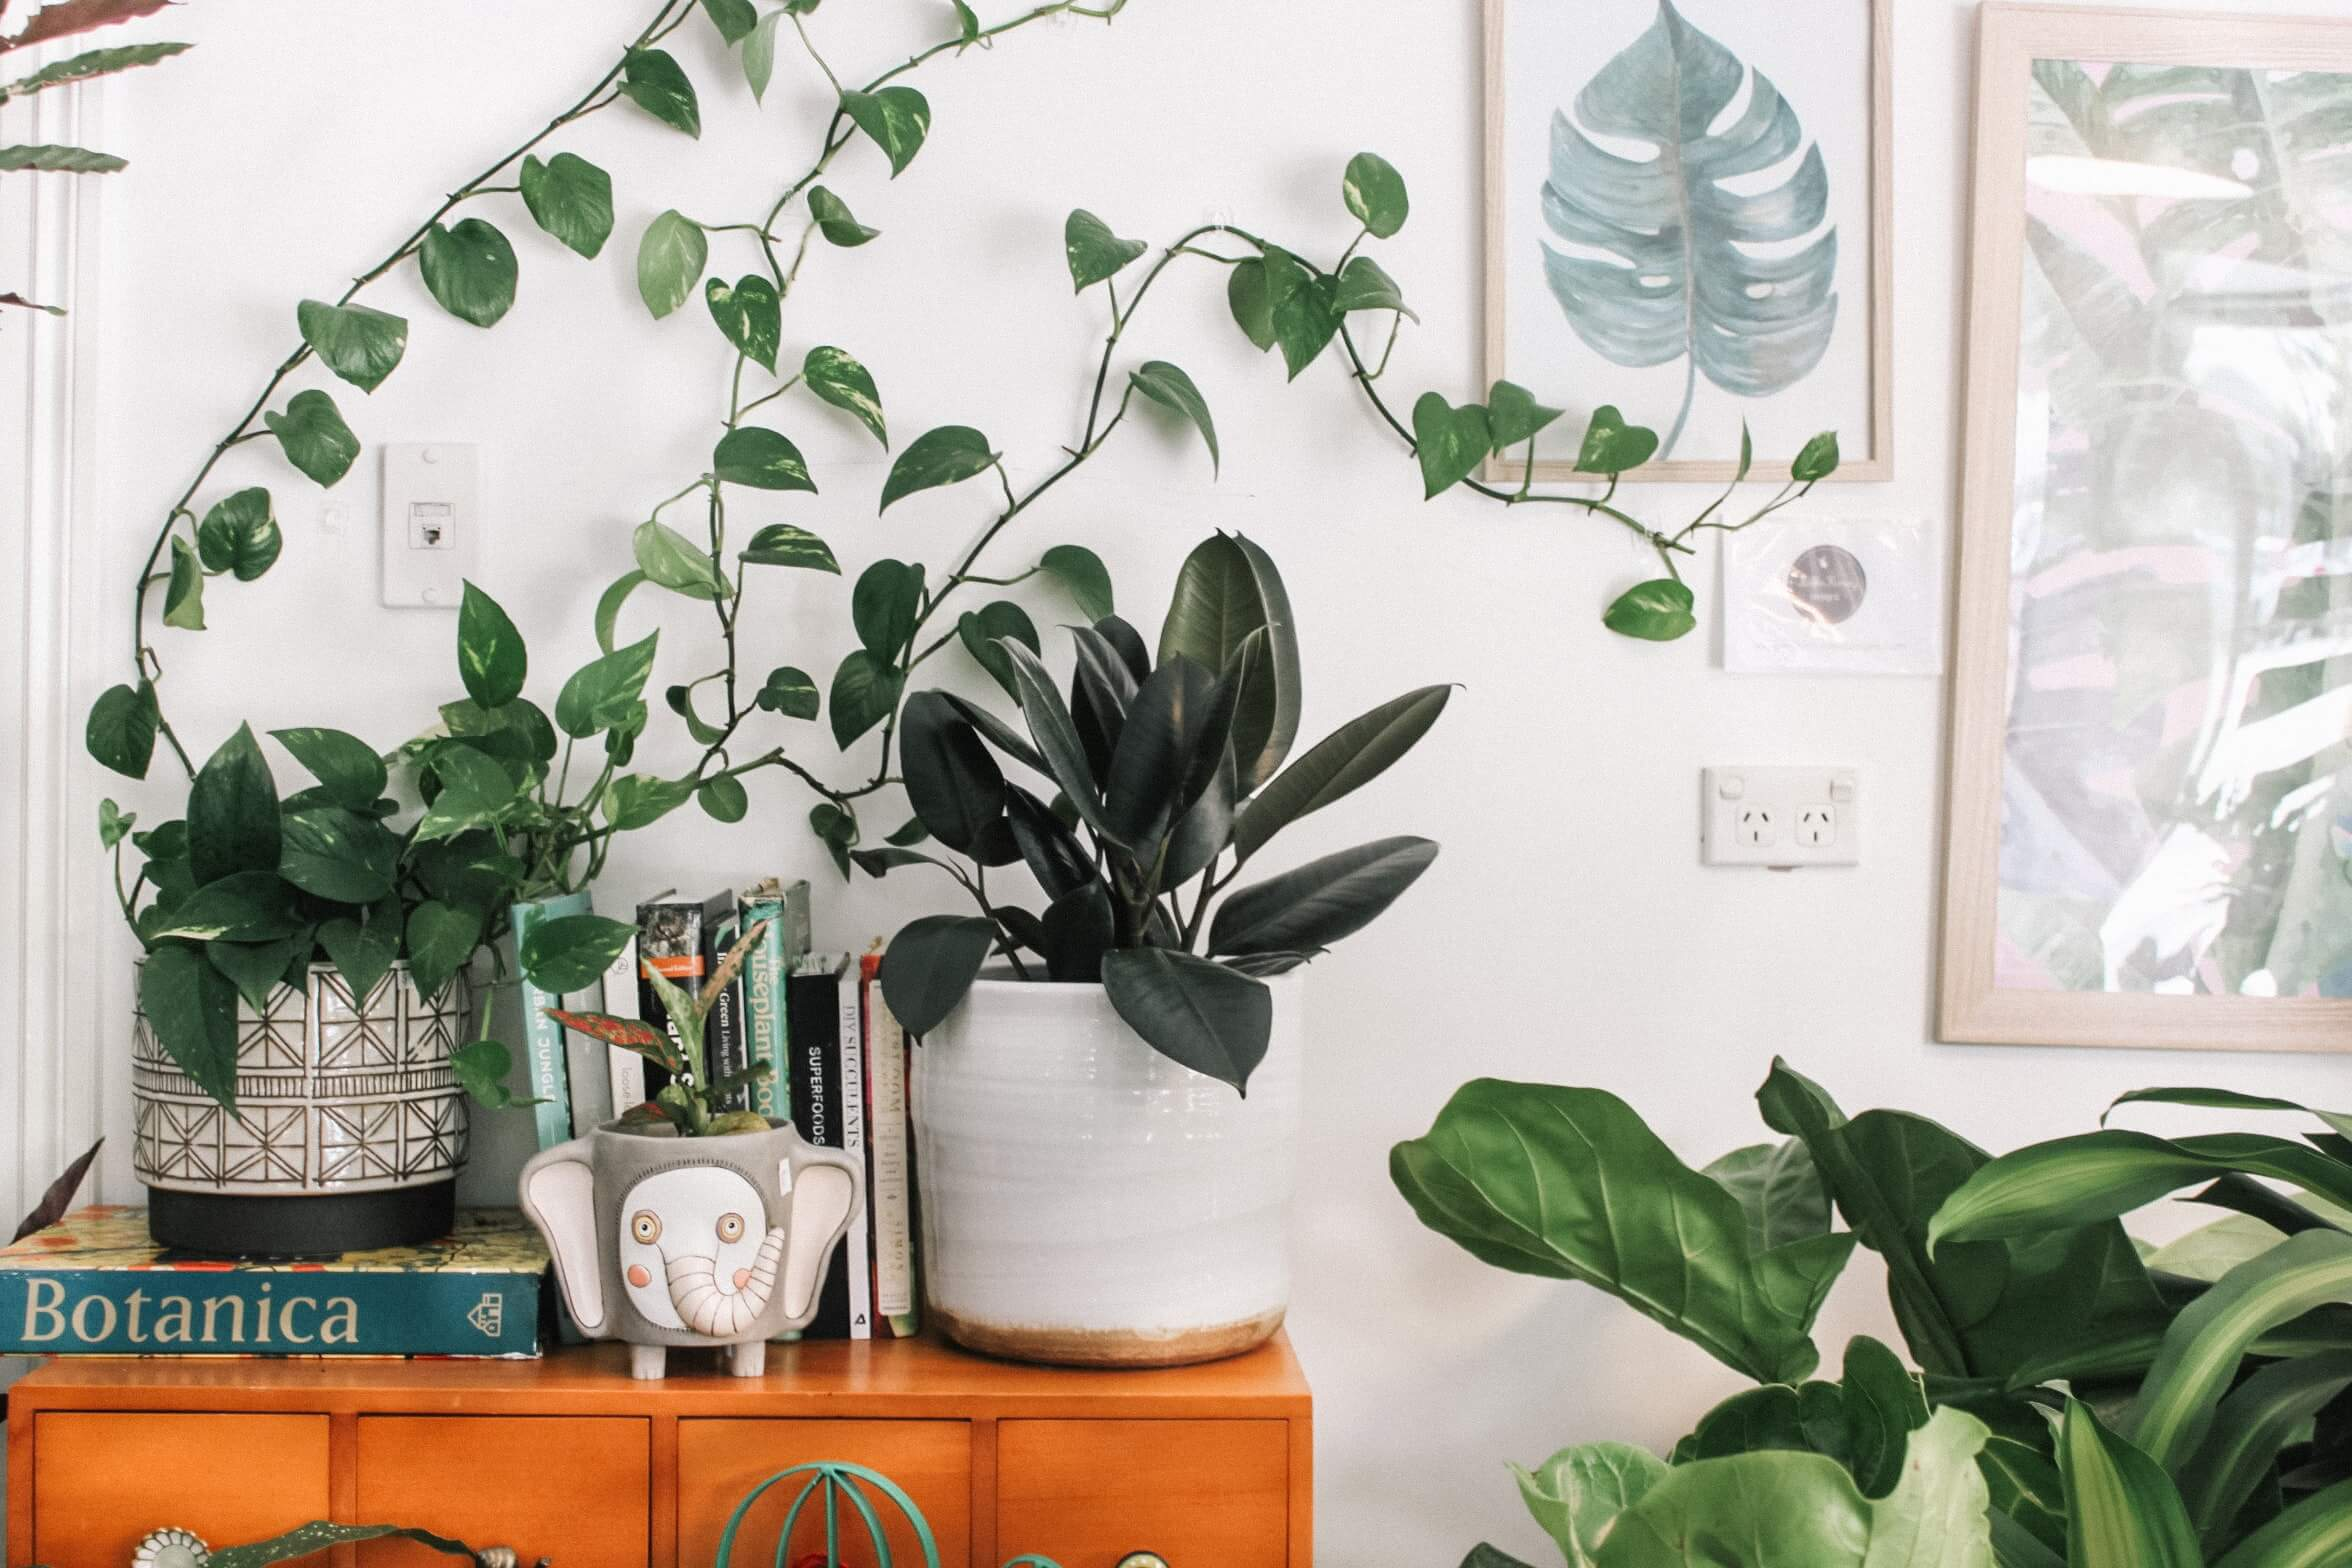 succulents and plants to decorate apartment